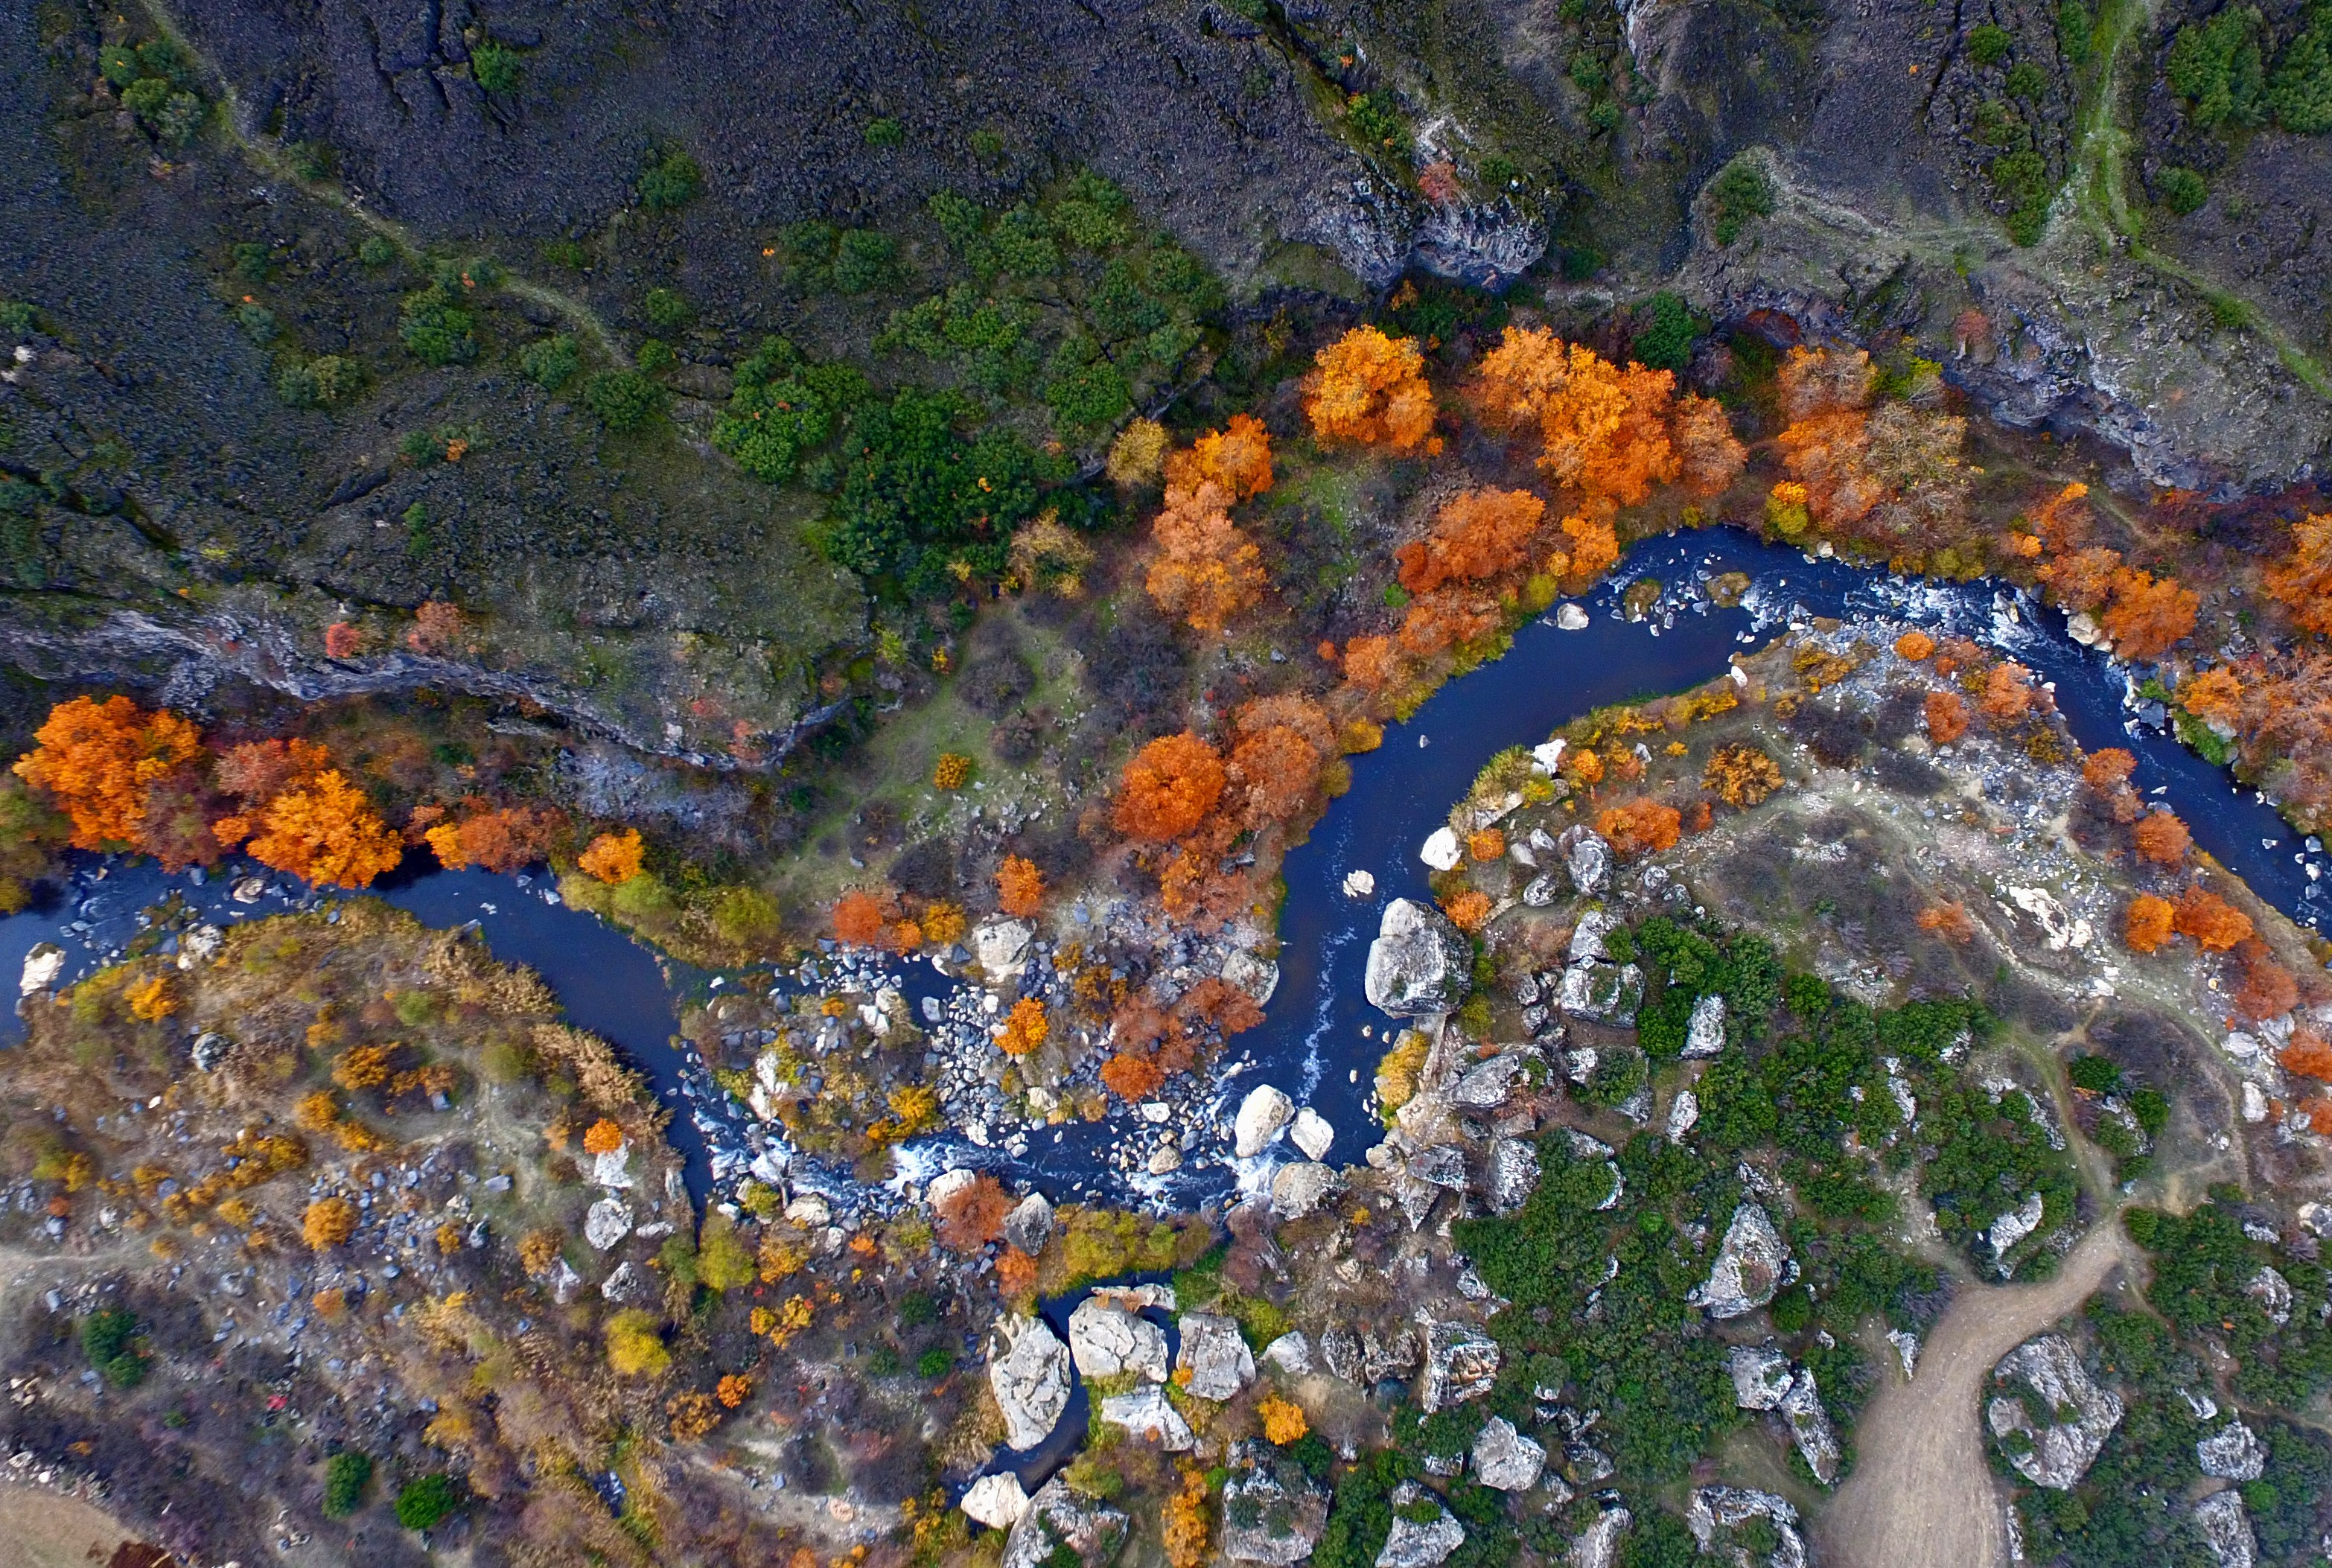 Slide 53 of 73: MANISA, TURKEY - NOVEMBER 21: A drone photo shows an aerial view of trees during the autumn season at Kula Volcanic Geopark located in Turkey's Manisa on November 21, 2017.